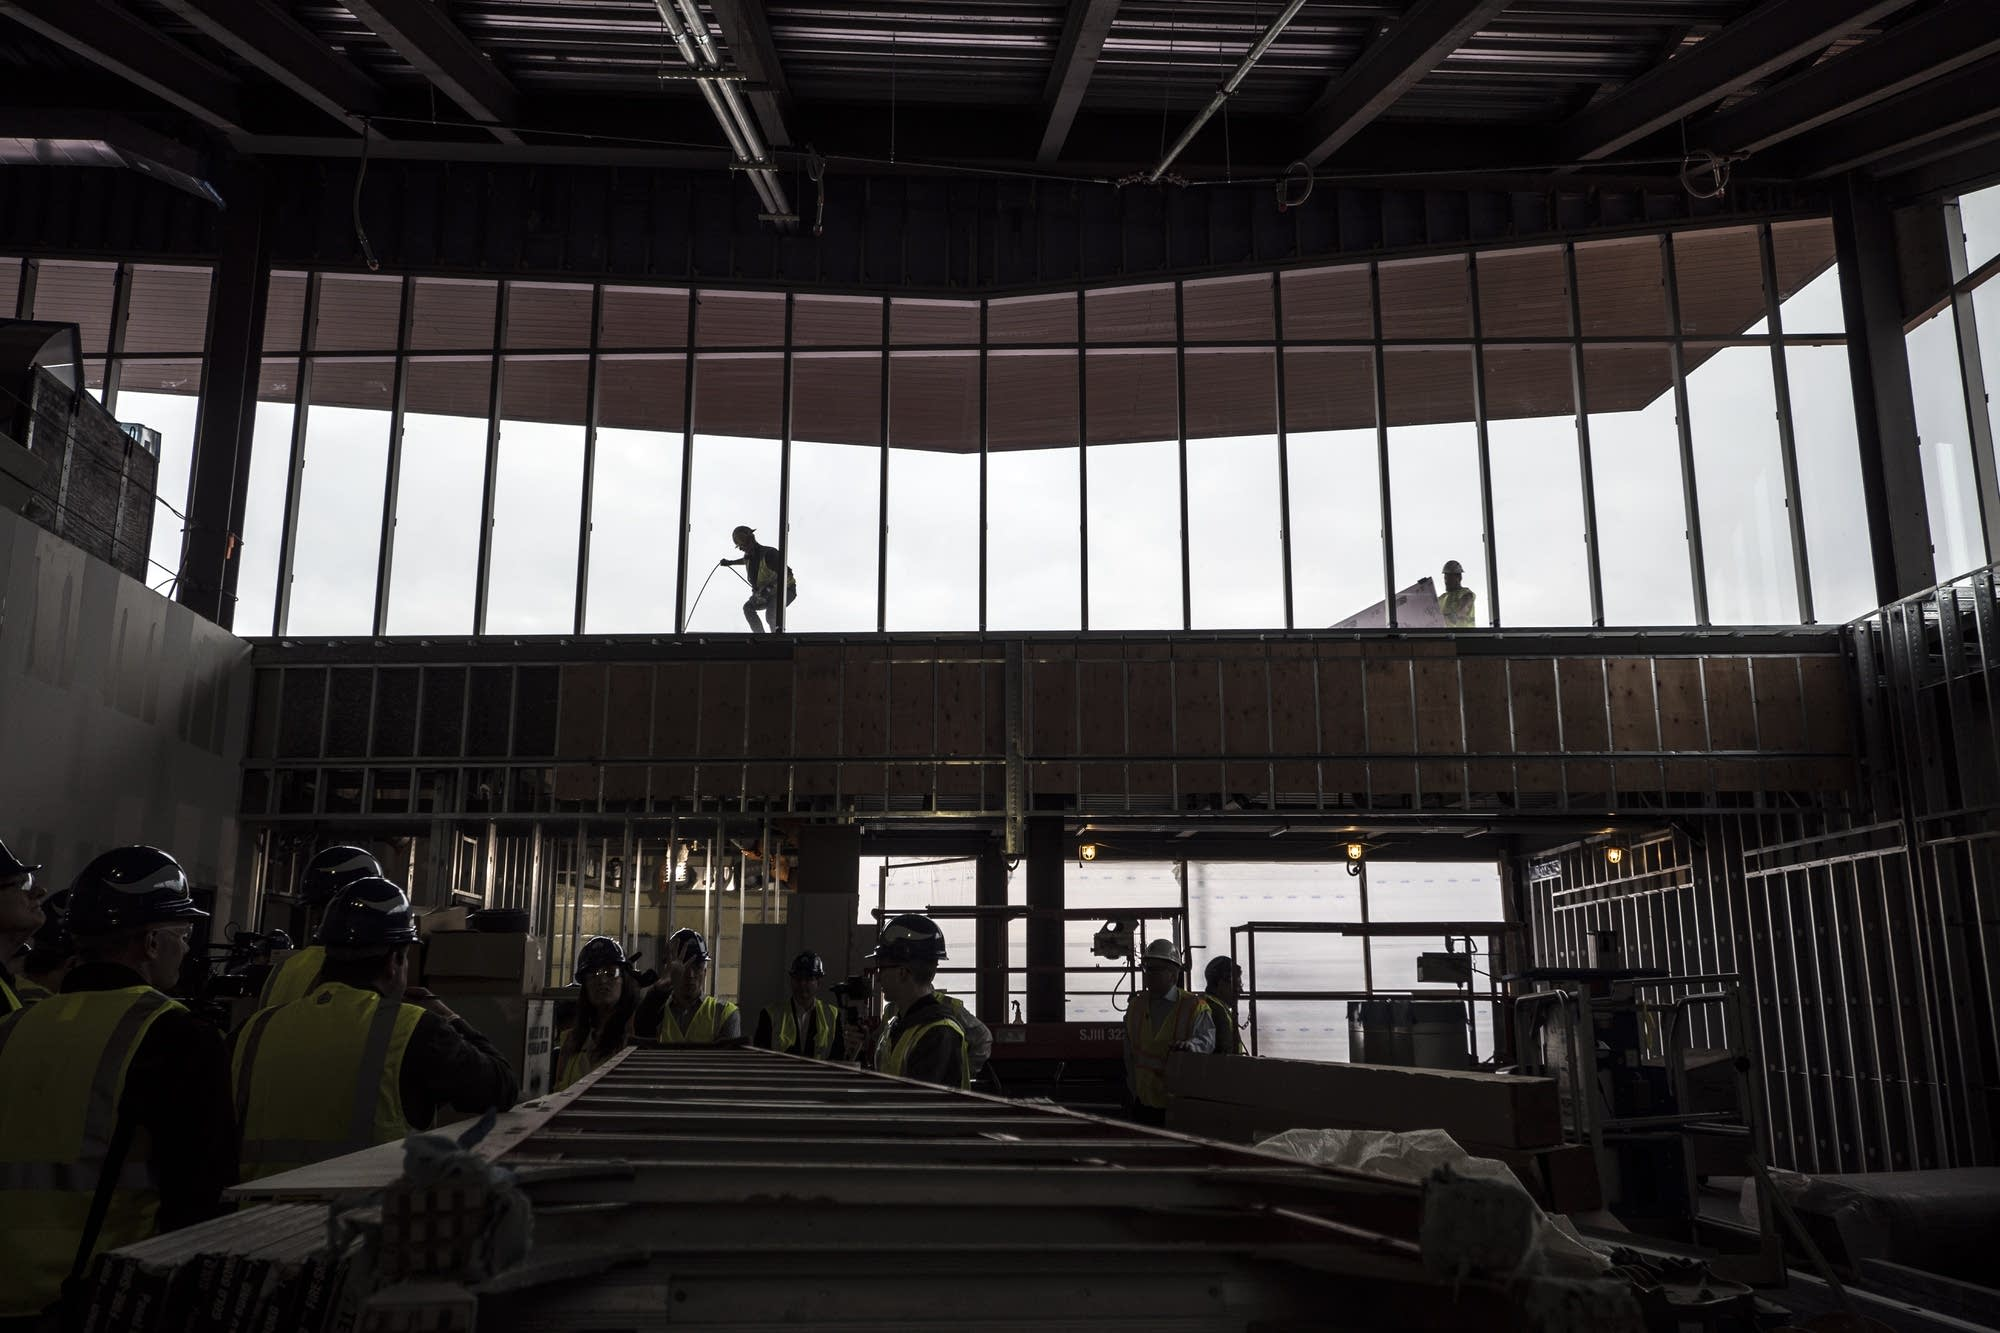 Workers are visible on the roof from the lobby that is under construction.